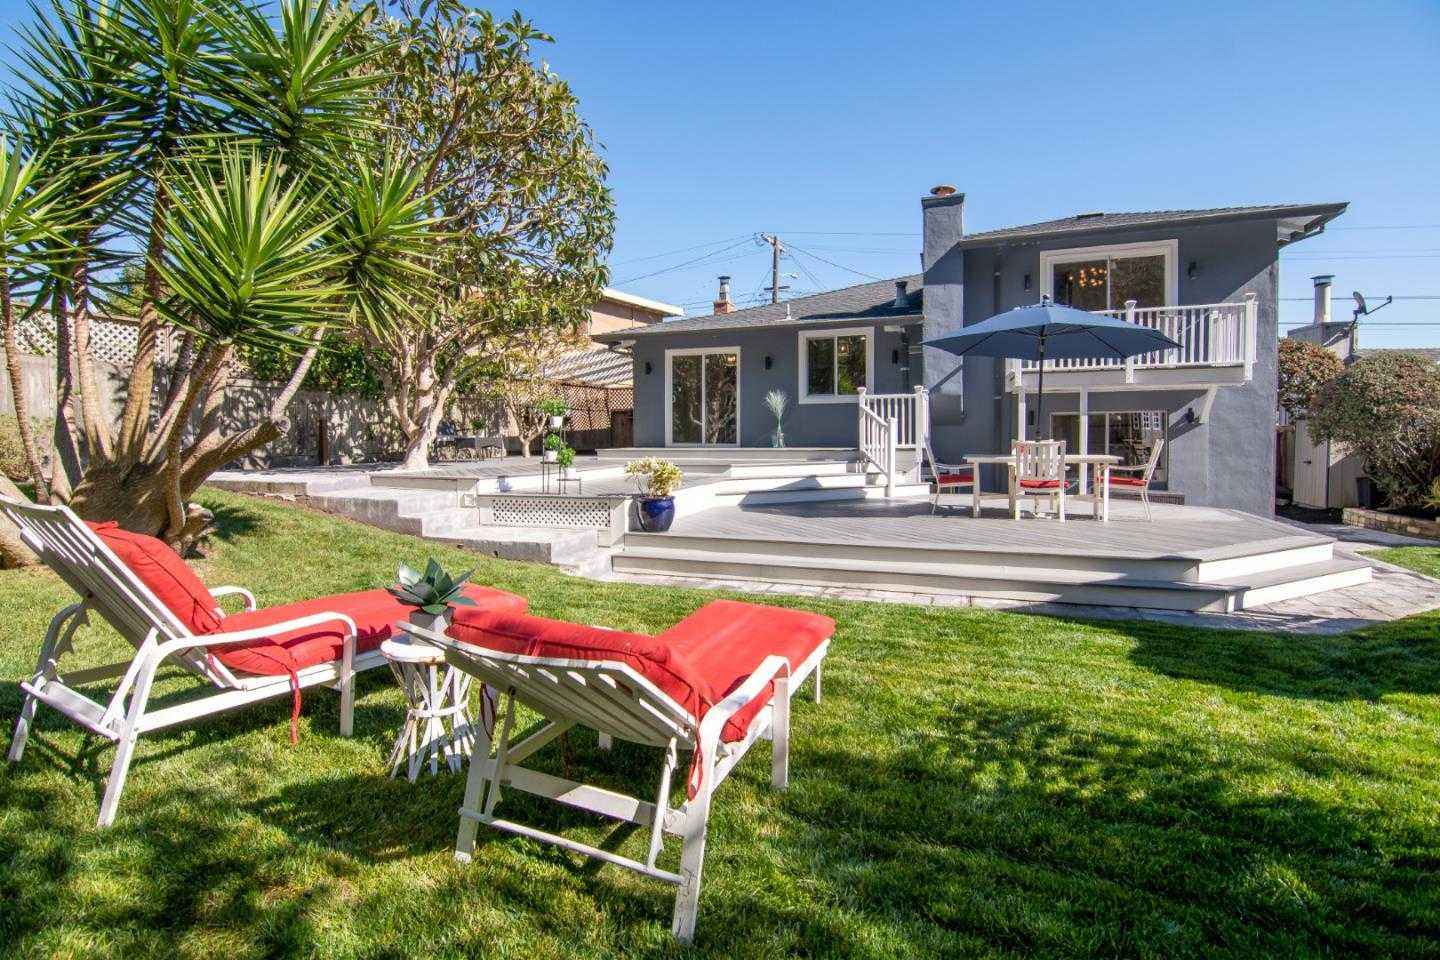 $1,249,000 - 3Br/2Ba -  for Sale in South San Francisco